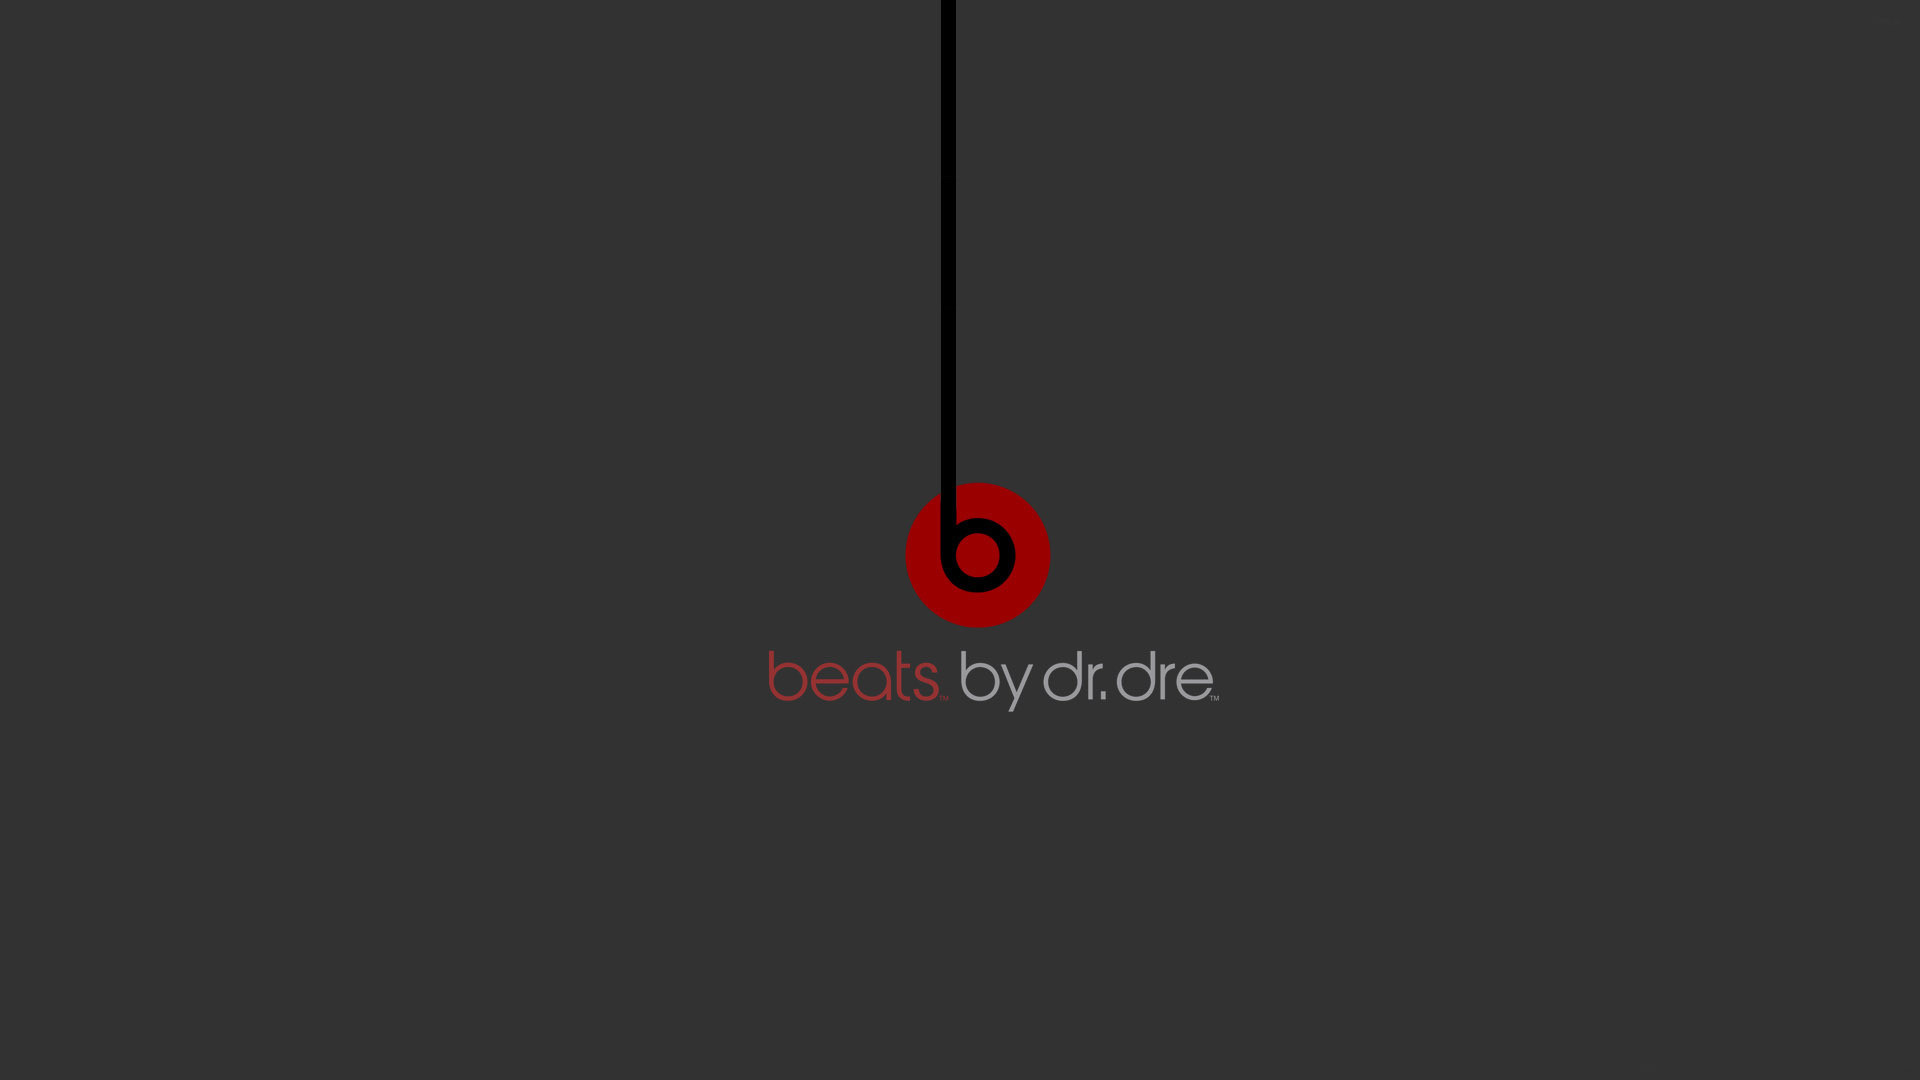 beats by dre wallpaper 1080p 68 images